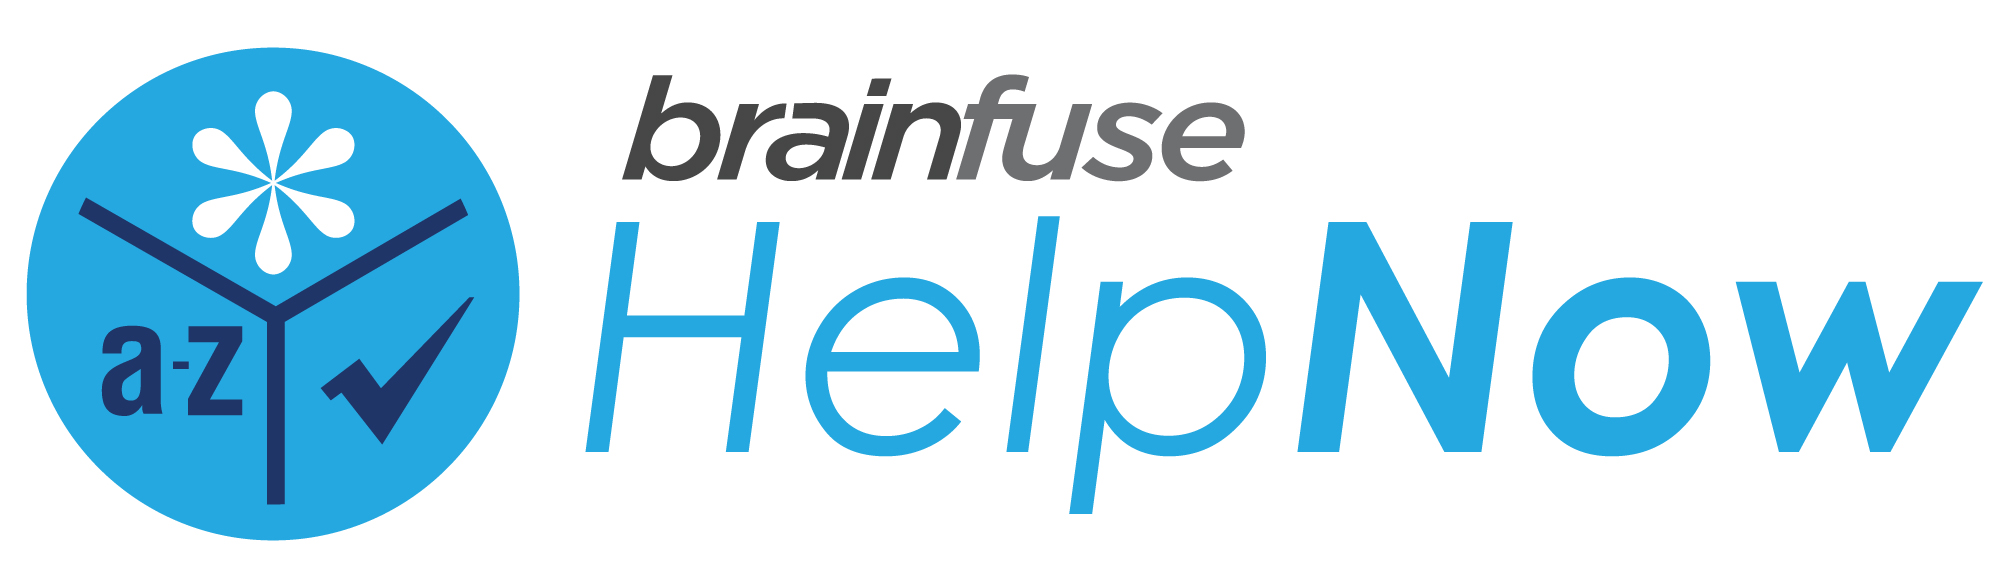 Brainfuse HelpNow website